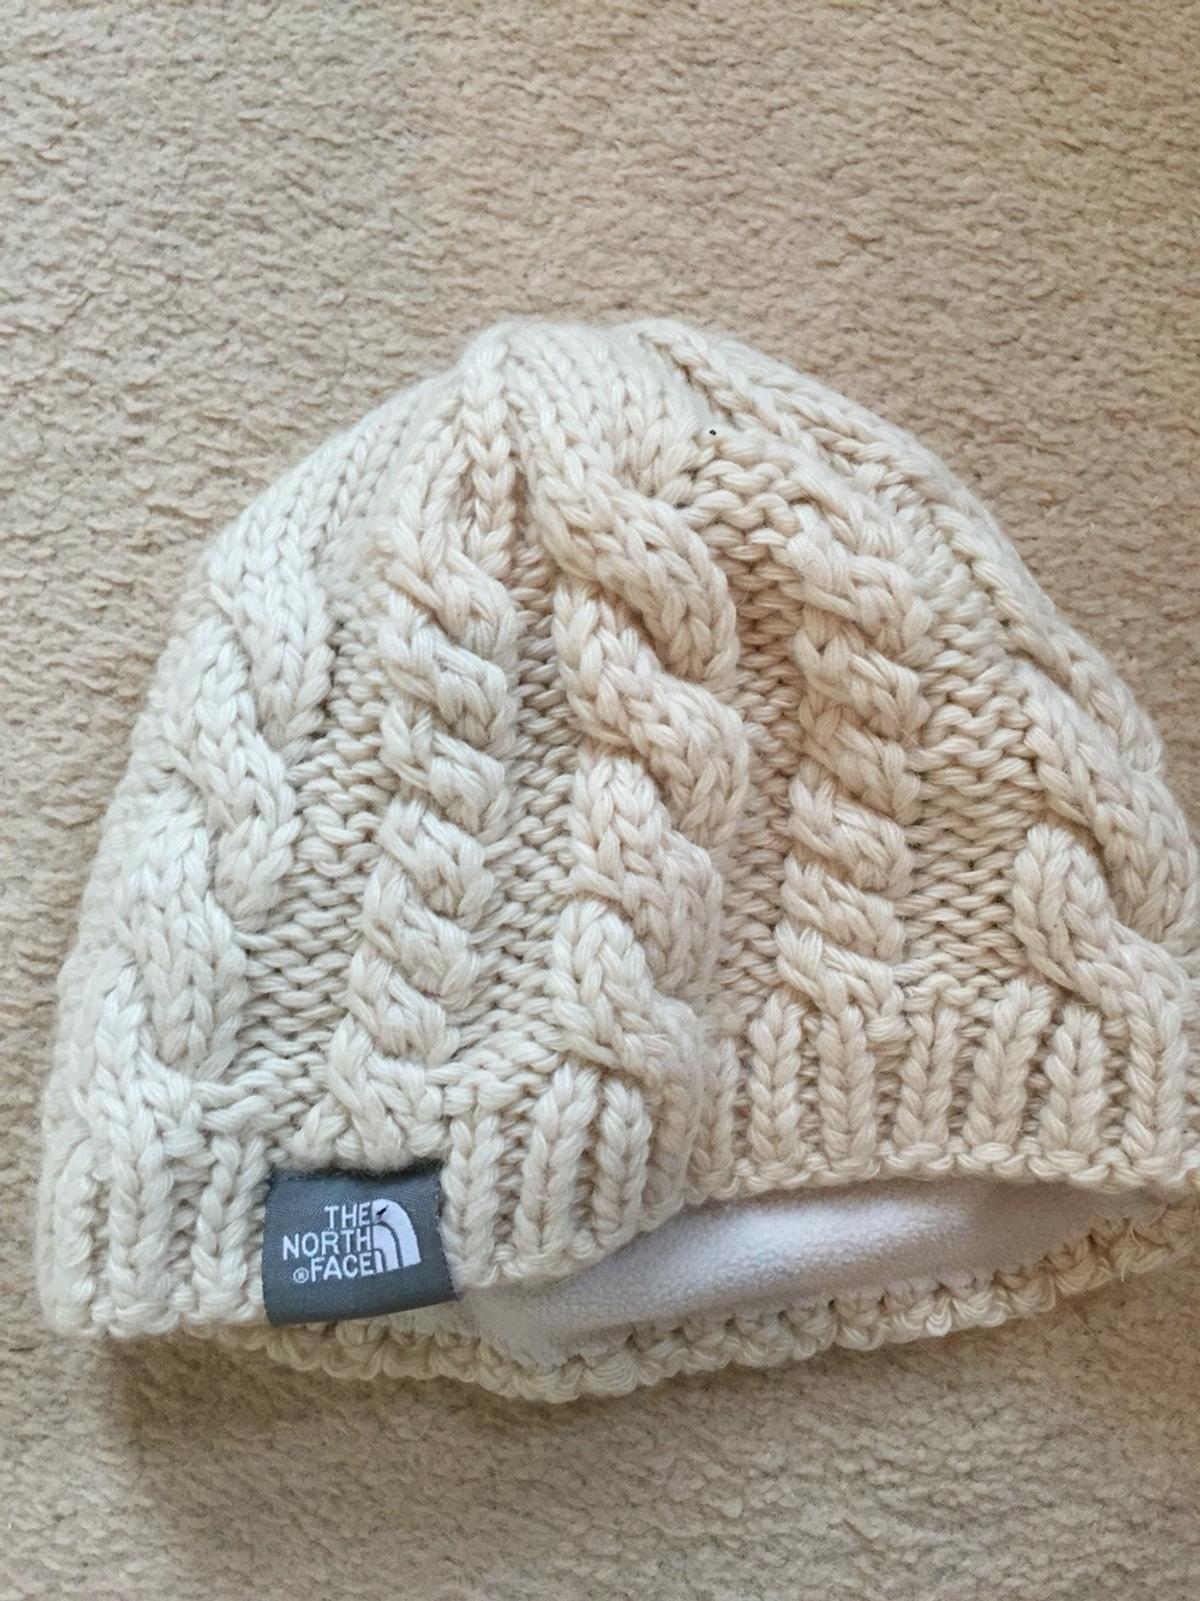 5e9c92650c9f5 North Face Wool Hat in Cream in LS26 Leeds für £ 6,00 kaufen - Shpock